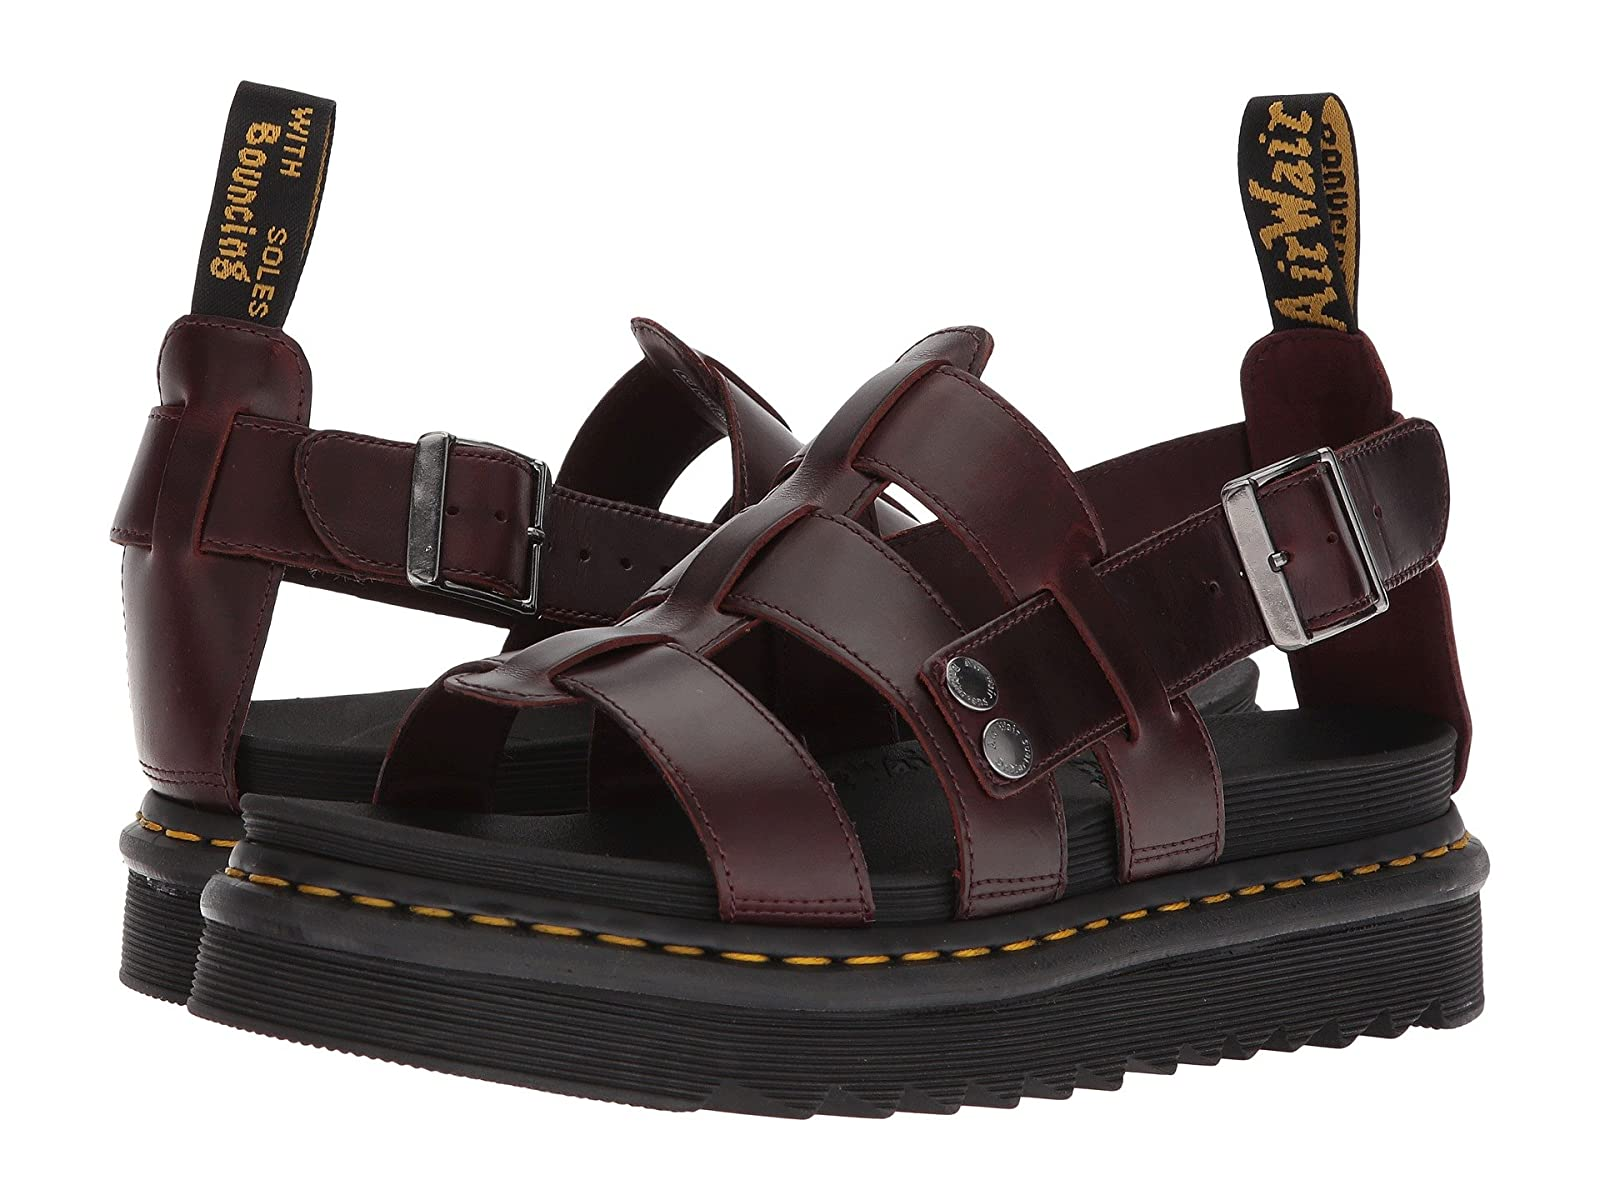 Dr. Martens TerryComfortable and distinctive shoes